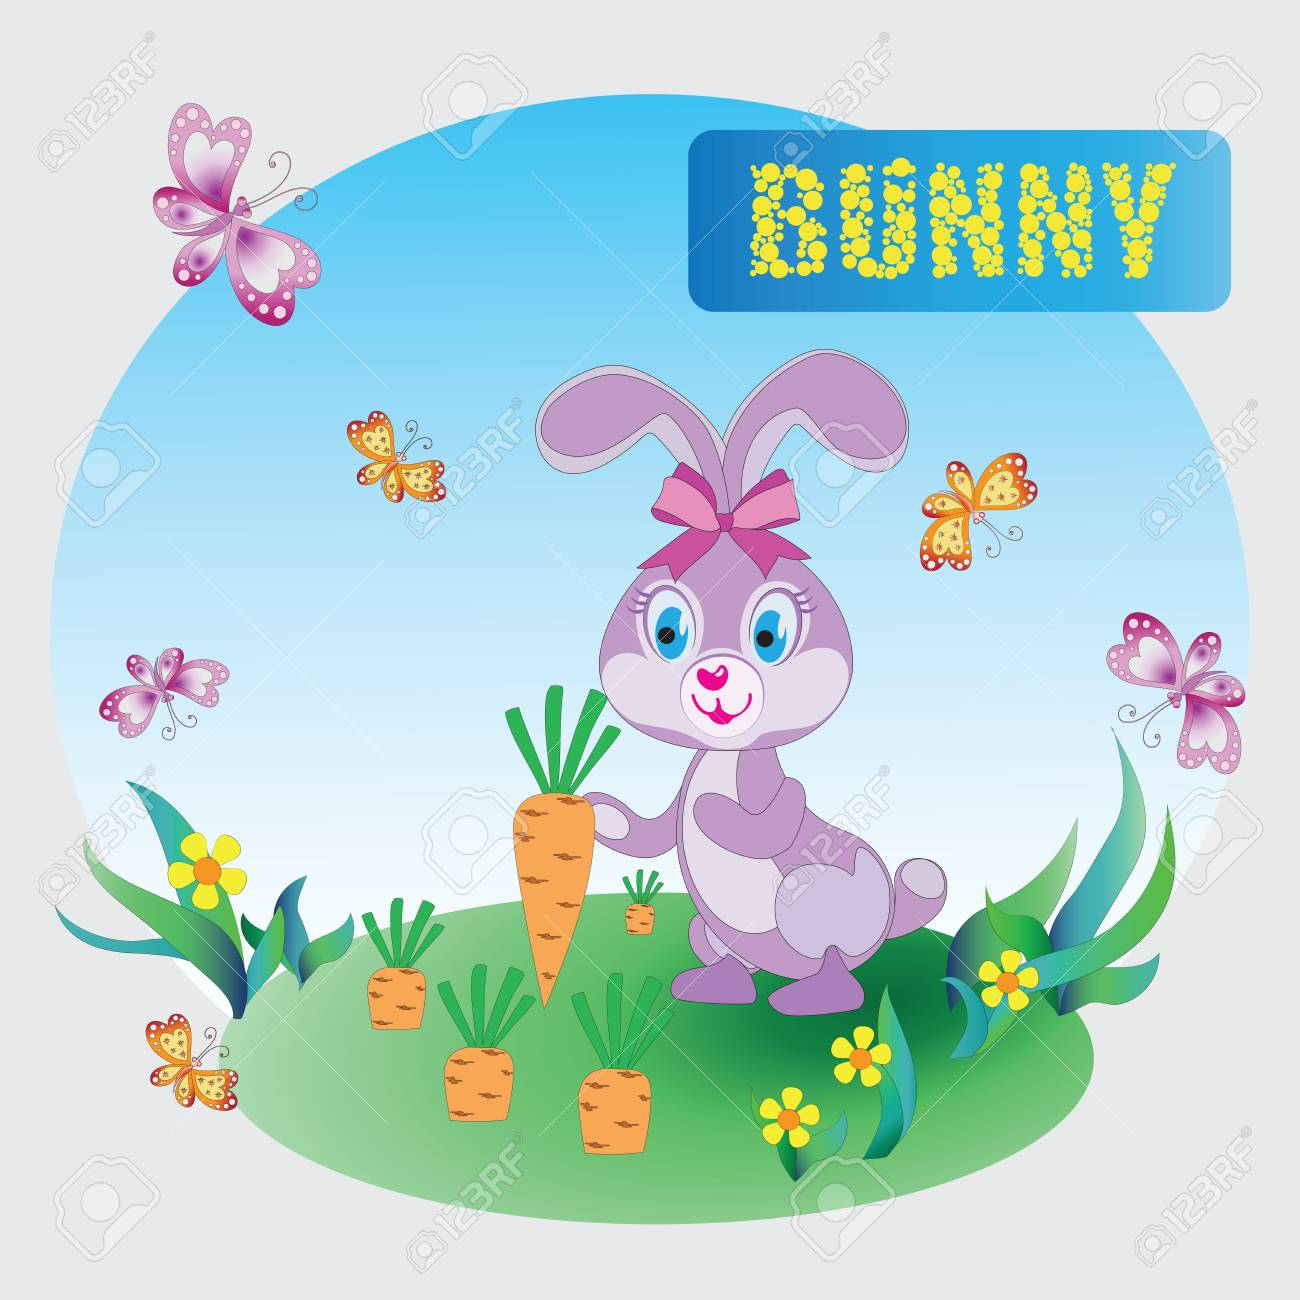 Funny Pink Bunny Zoo A Child S Drawing The Cartoon Characters